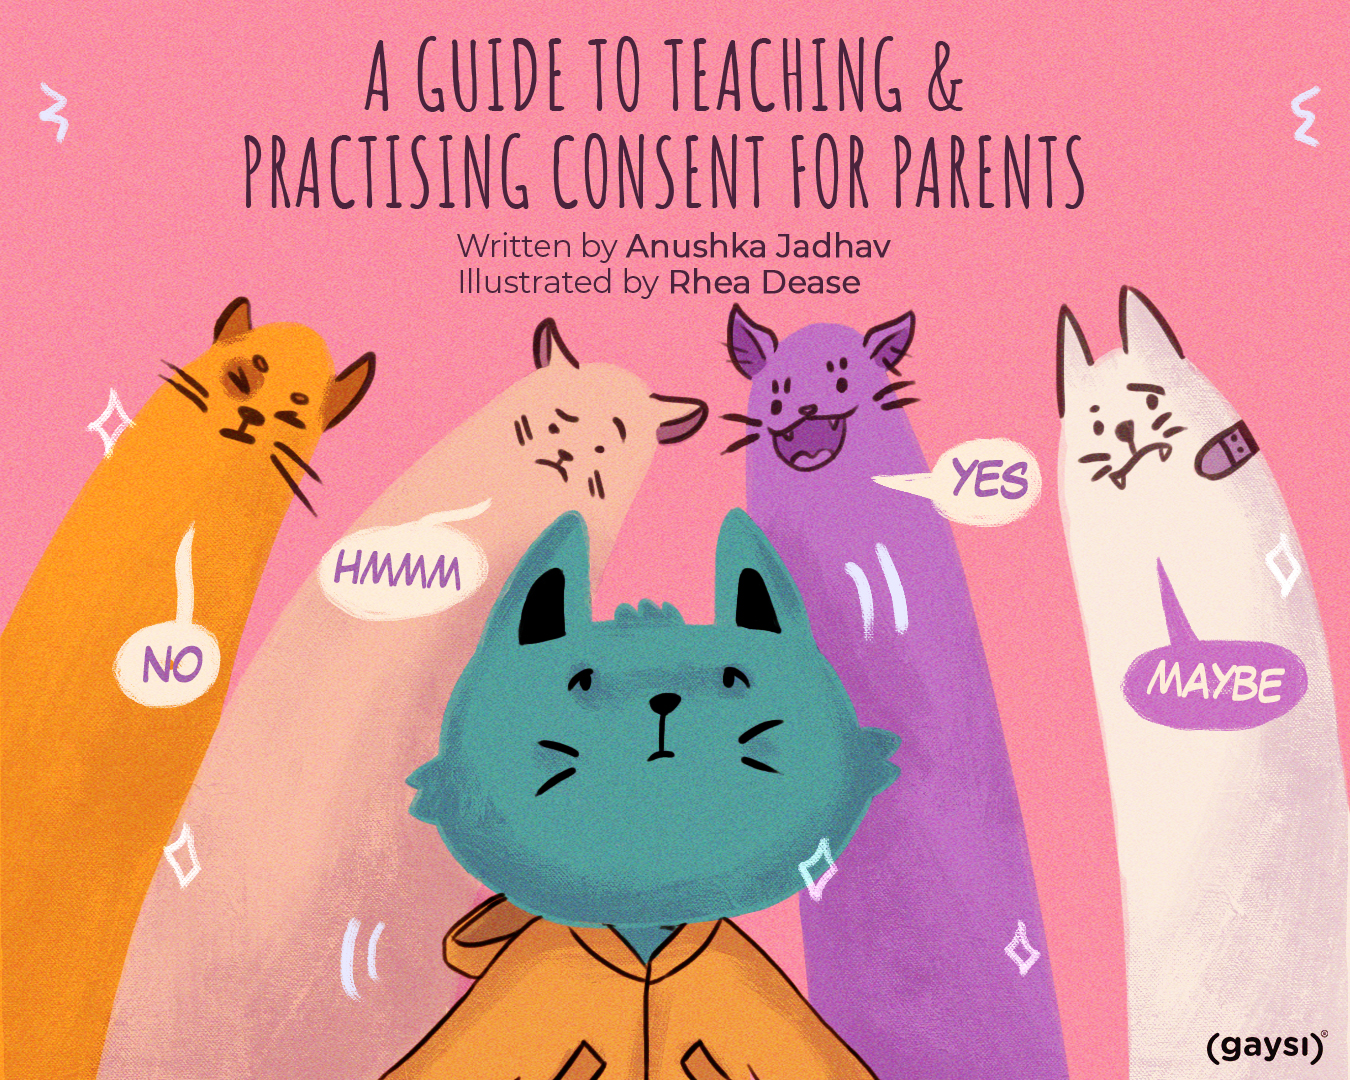 A Guide To Teaching & Practising Consent For Parents